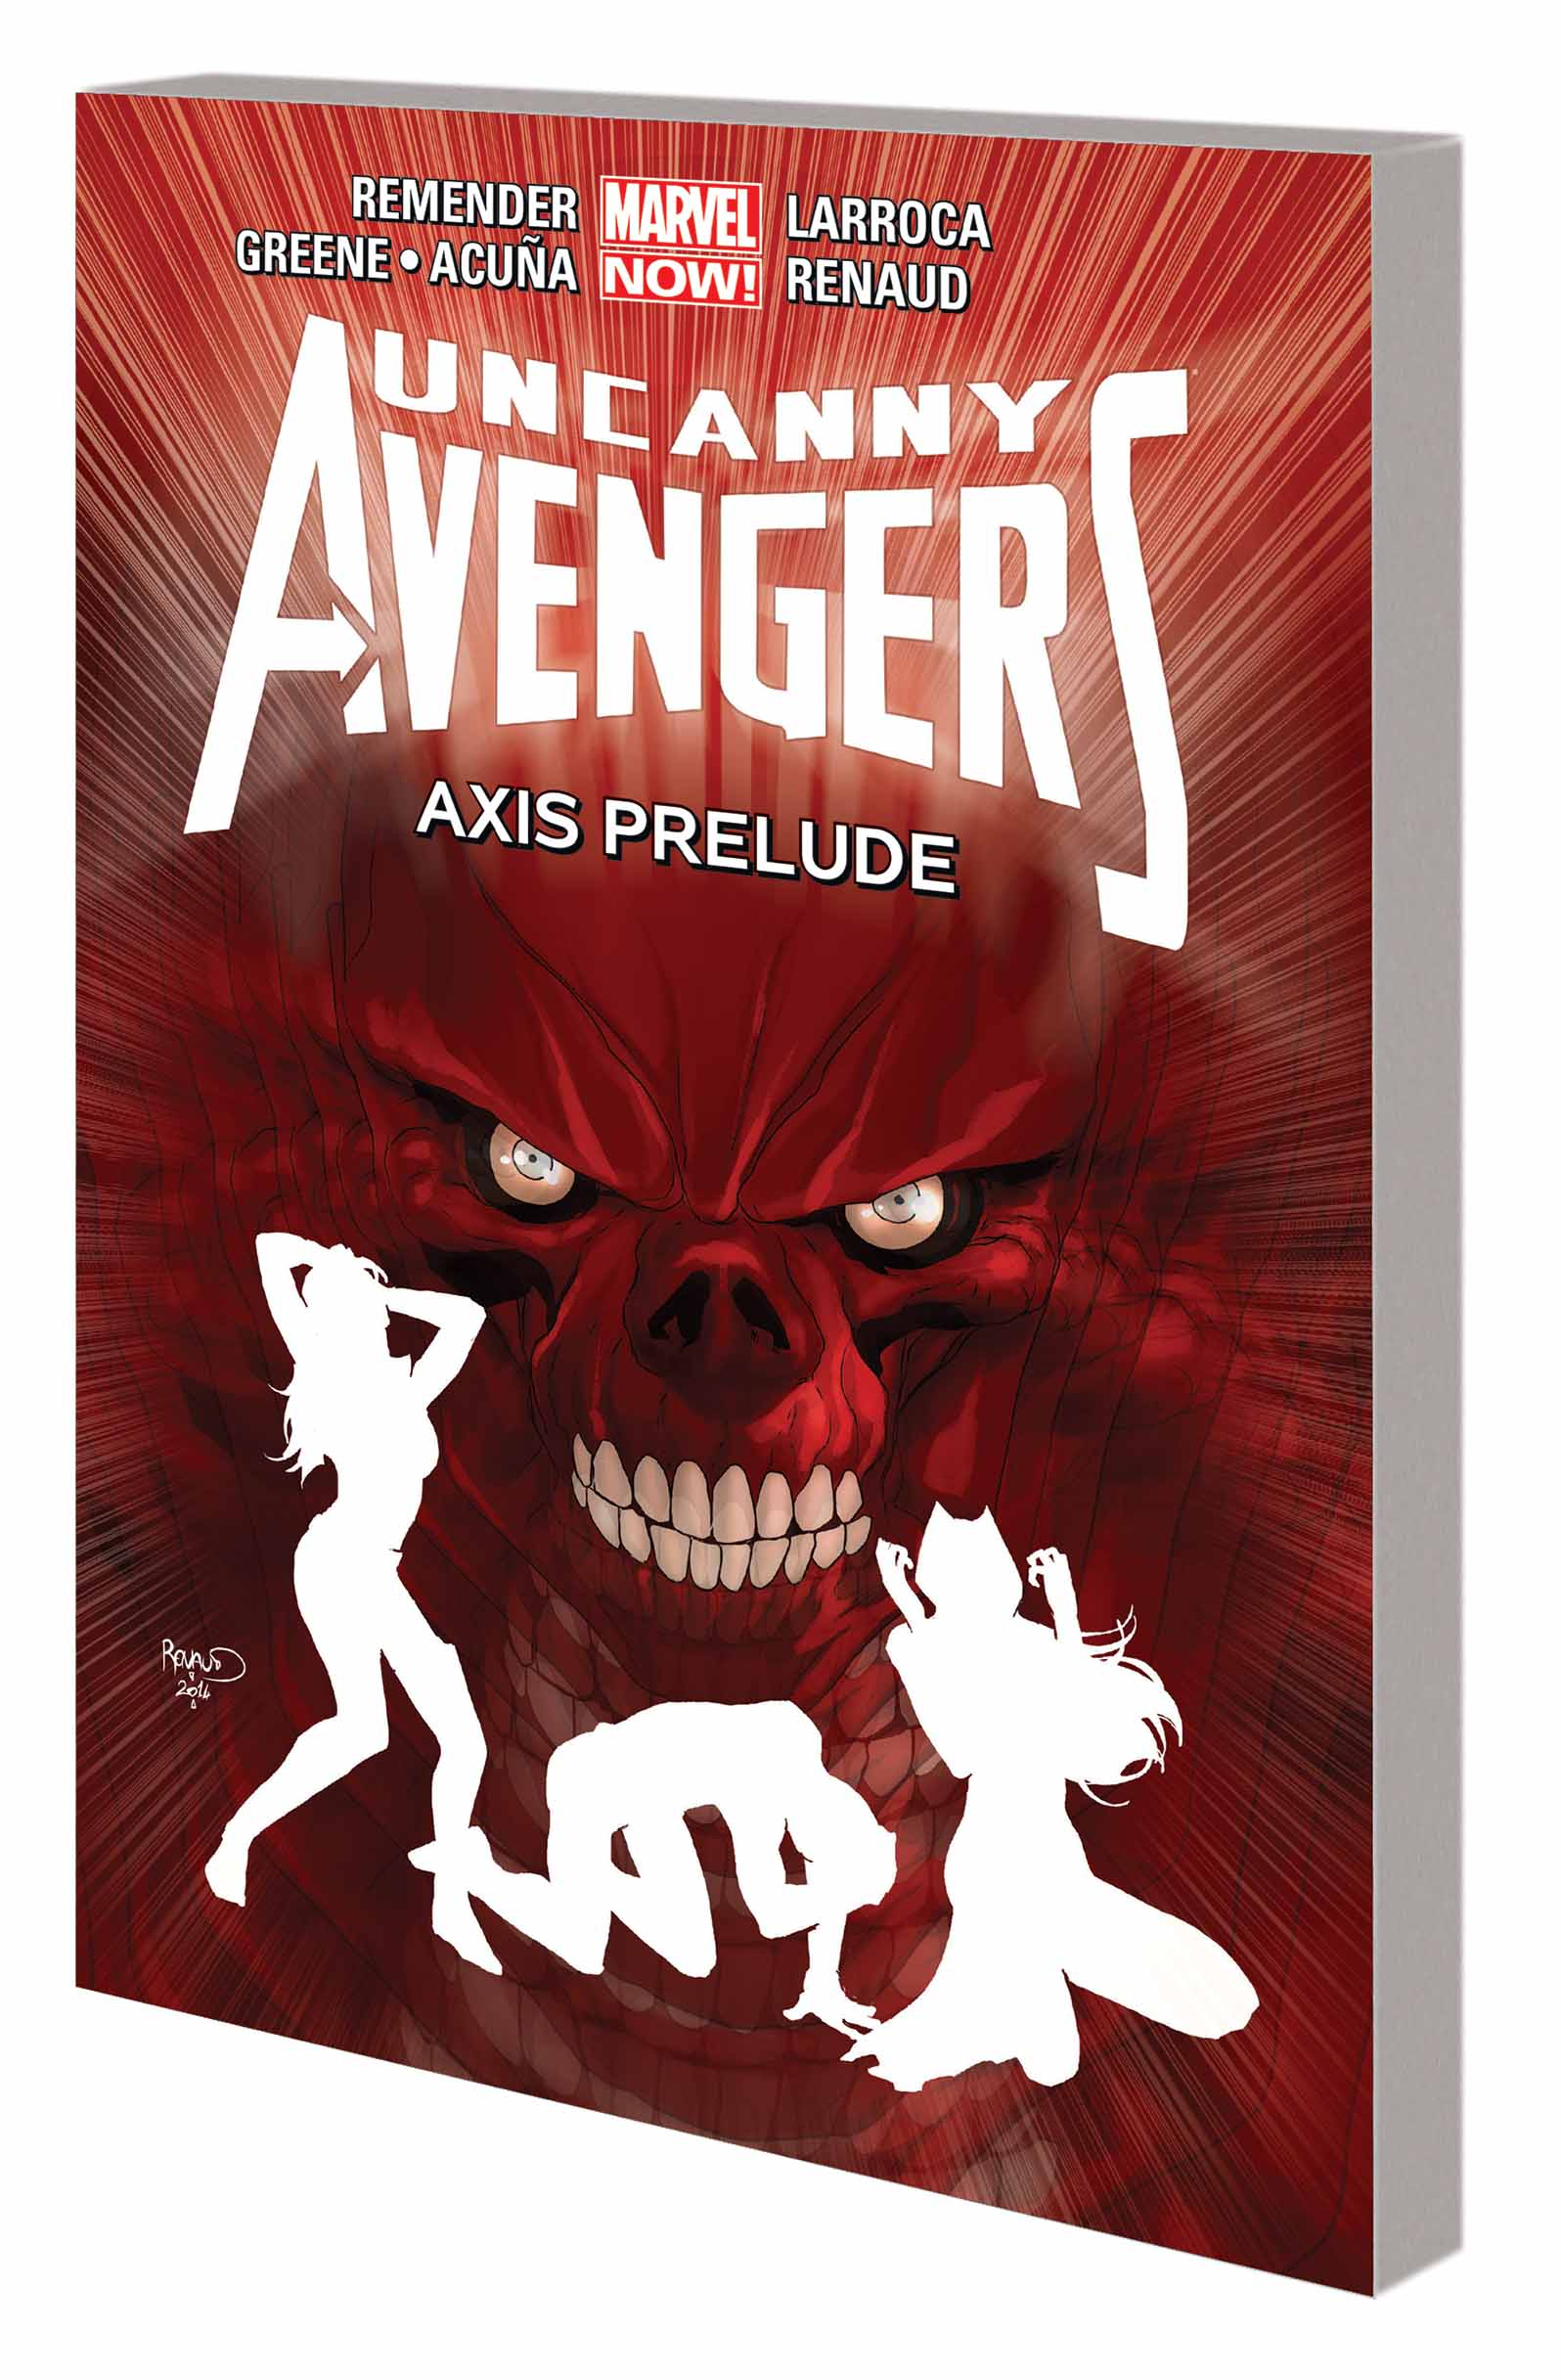 UNCANNY AVENGERS VOL. 5: AXIS PRELUDE (Trade Paperback)